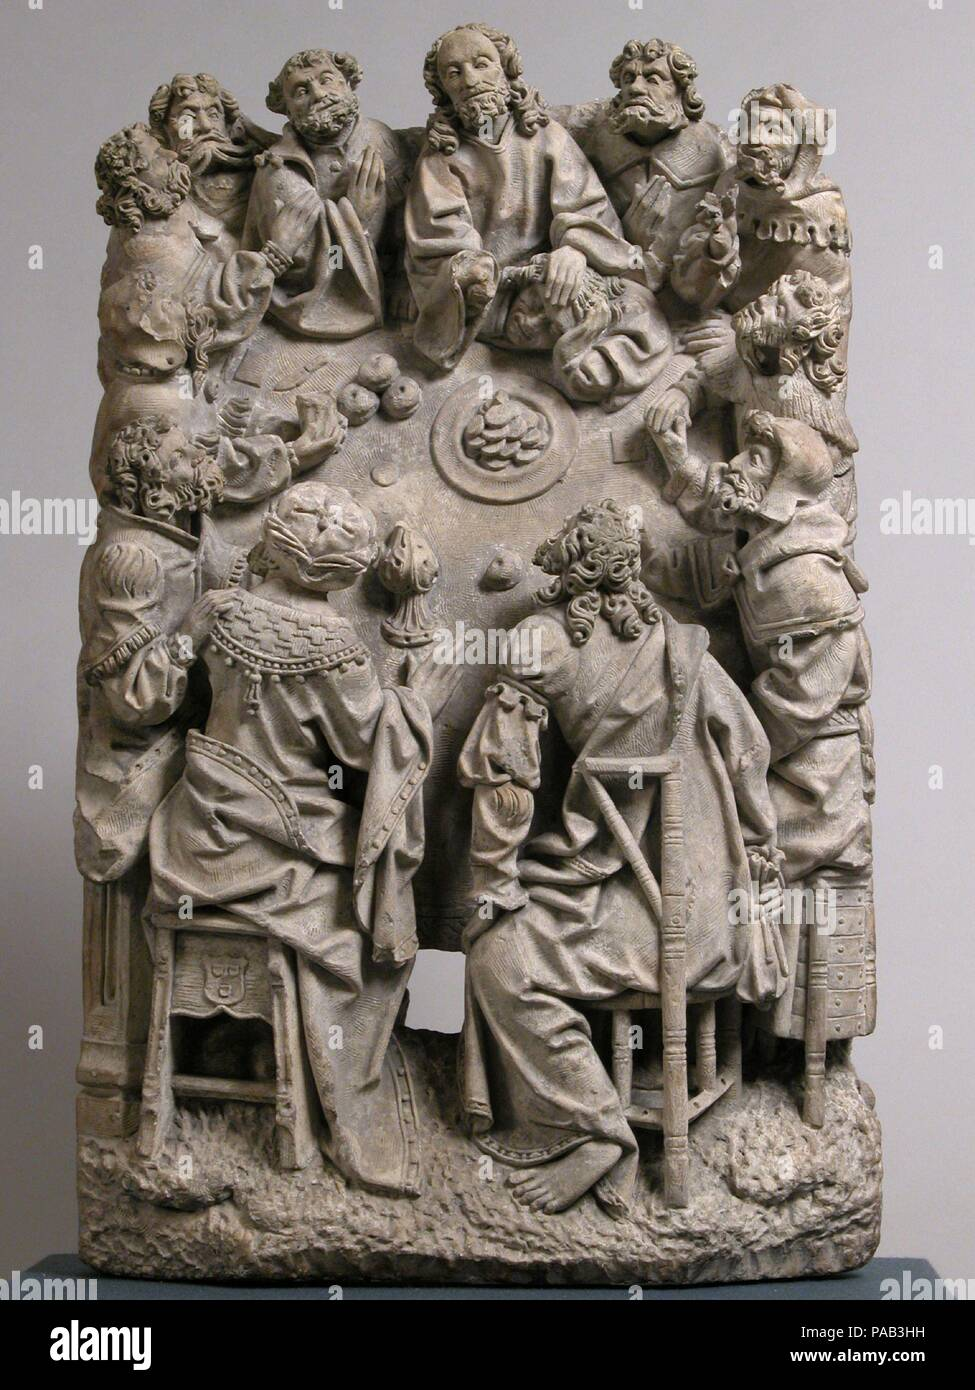 The Last Supper. Culture: German or South Netherlandish. Dimensions: Overall: 25 x 15 1/2 x 6 1/2 in. (63.5 x 39.4 x 16.5 cm). Date: ca. 1500-1530.  This scene of the Last Supper clearly shows each disciple, including Judas, who is seen at the lower right clutching his bag of money, a reference to his future betrayal. The elaborate and detailed carving indicates that the sculpture came from an important ecclesiastical setting, such as a sacrament house that contained the elements for celebrating mass. Cologne Cathedral contained such a structure, made by the sculptor Franz Maidburg (d. 1533),  - Stock Image